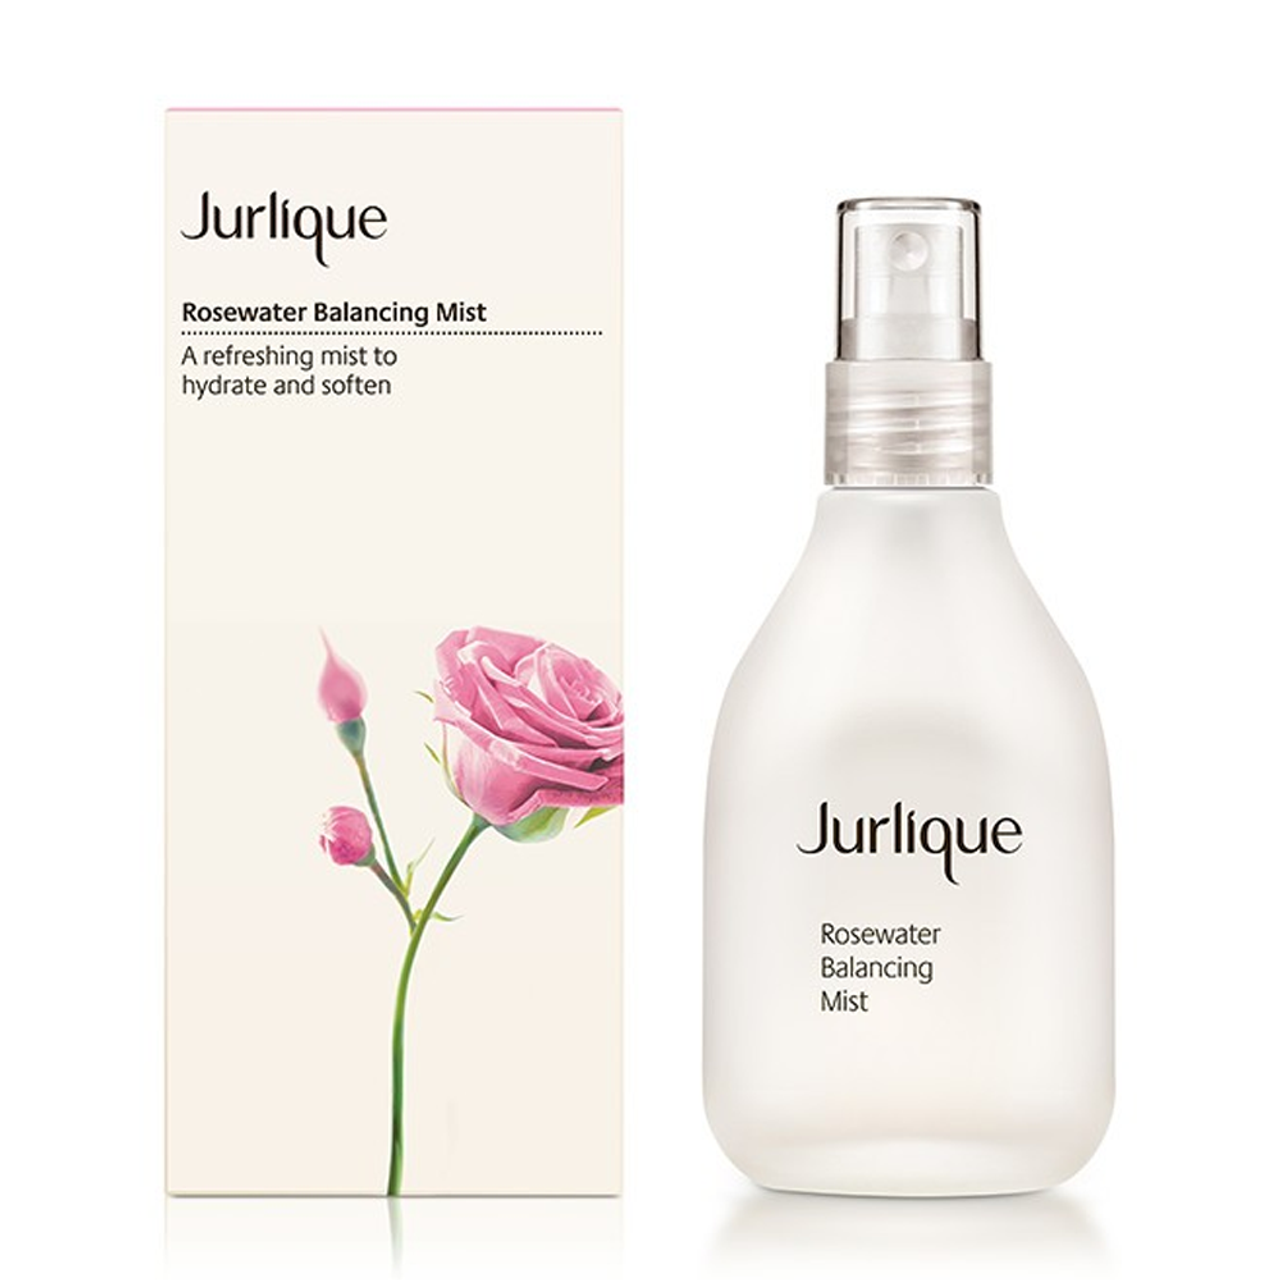 Jurlique Rosewater Balancing Mist (discontinued)